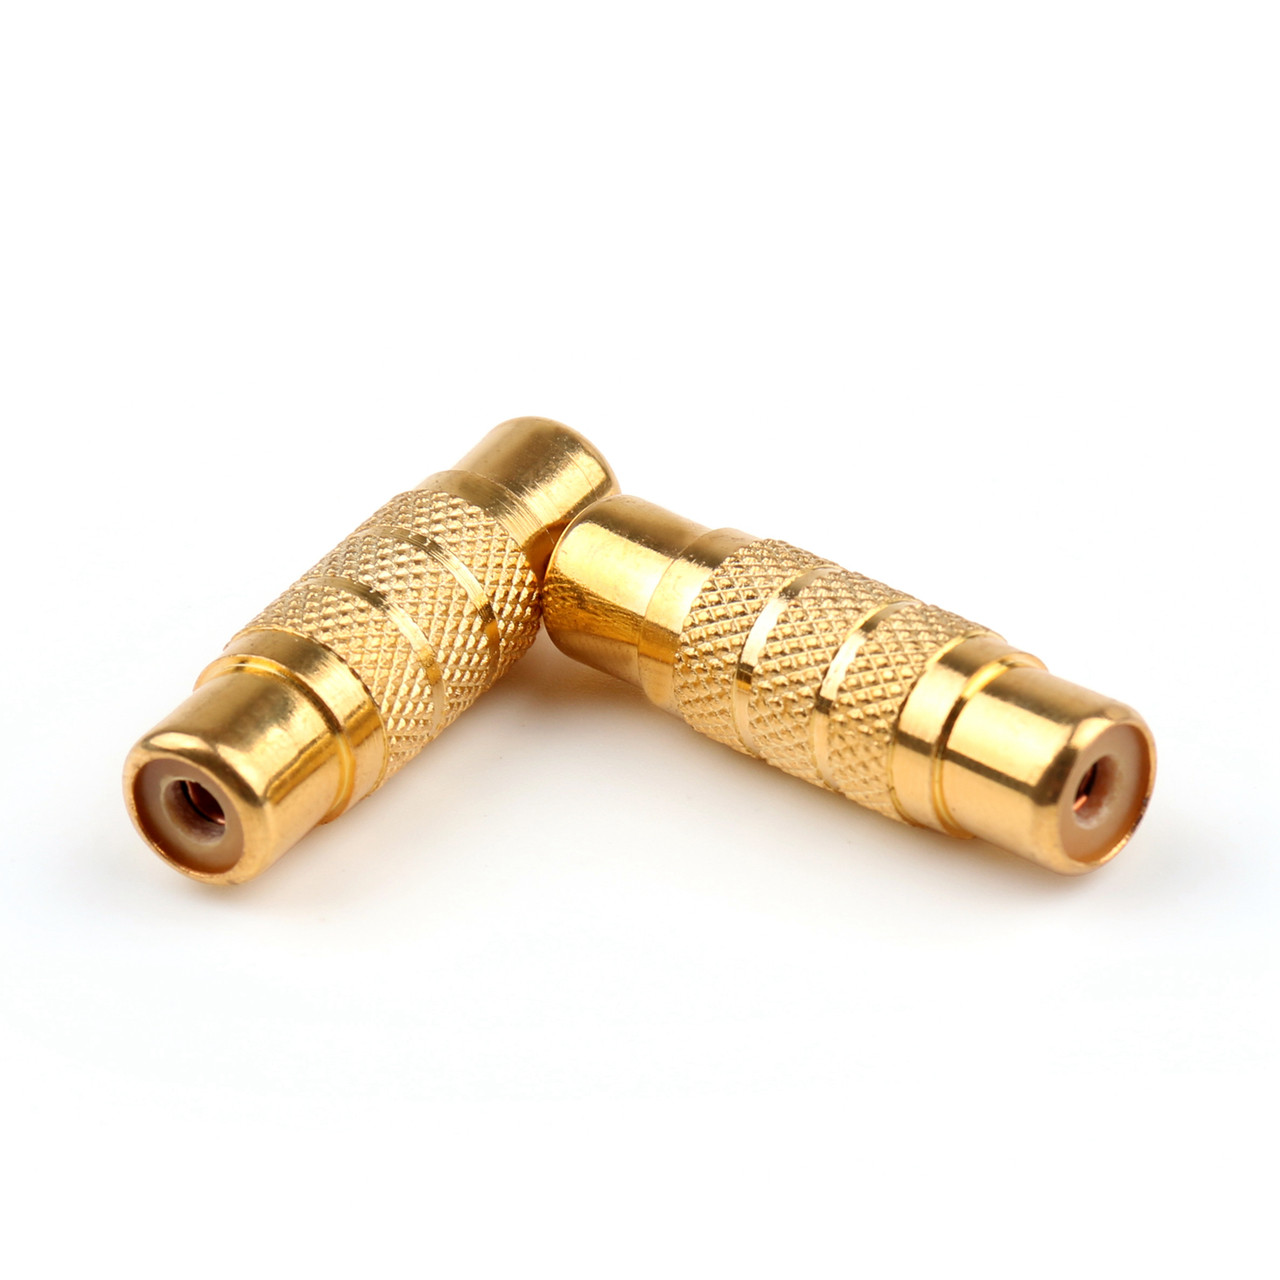 Mad Hornets 5PCS Gold-Plated RCA AV Audio Video Female To Female Coupler Connector